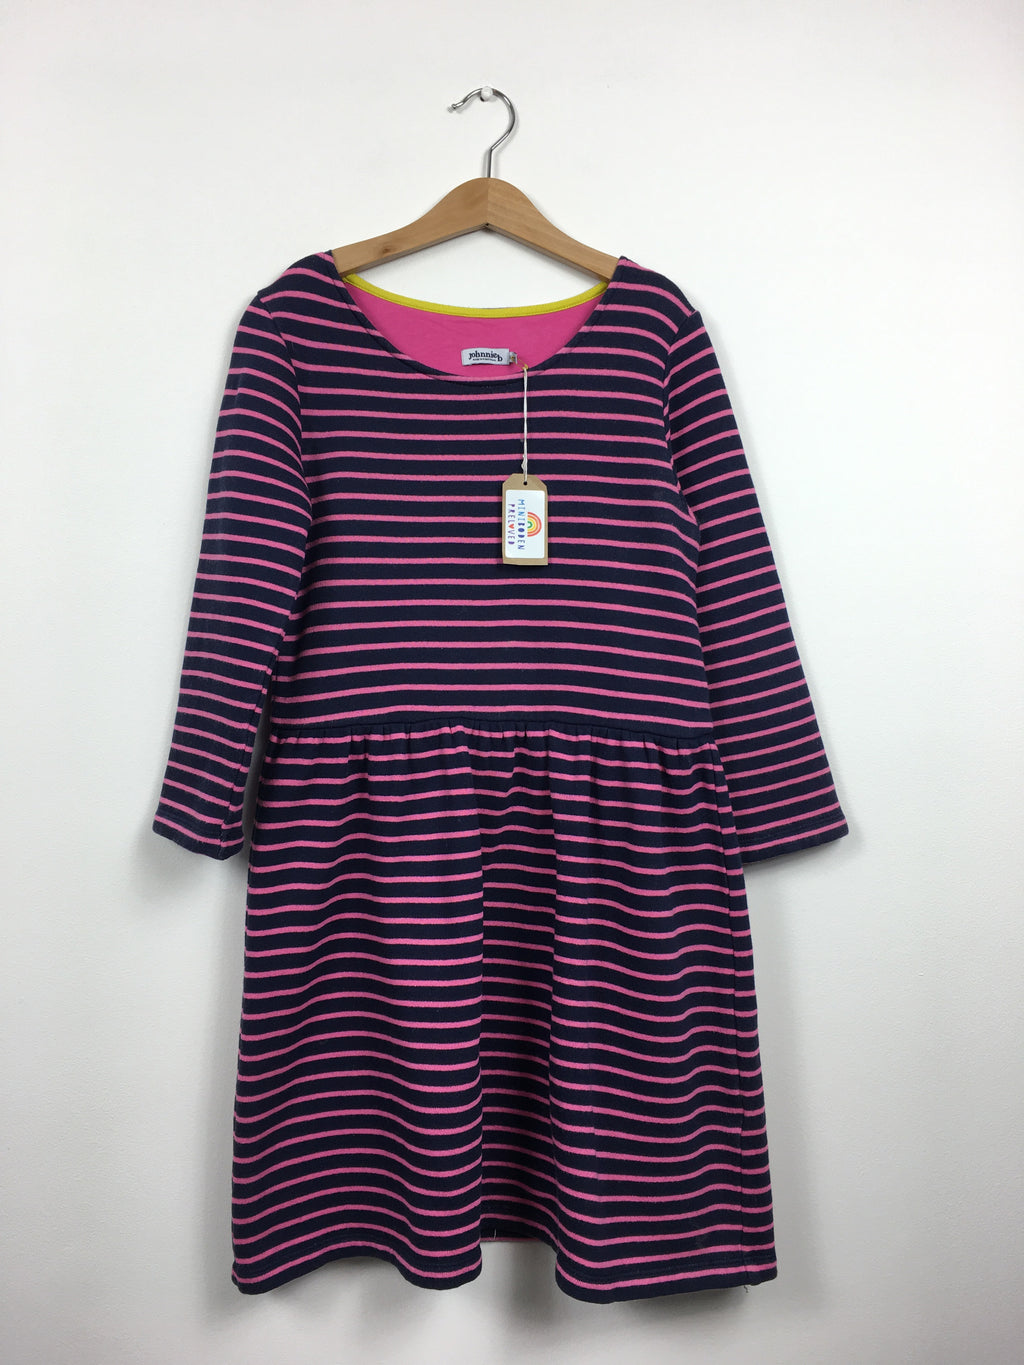 Navy & Pink Long Sleeved Jumper Dress  (11-12 Years)